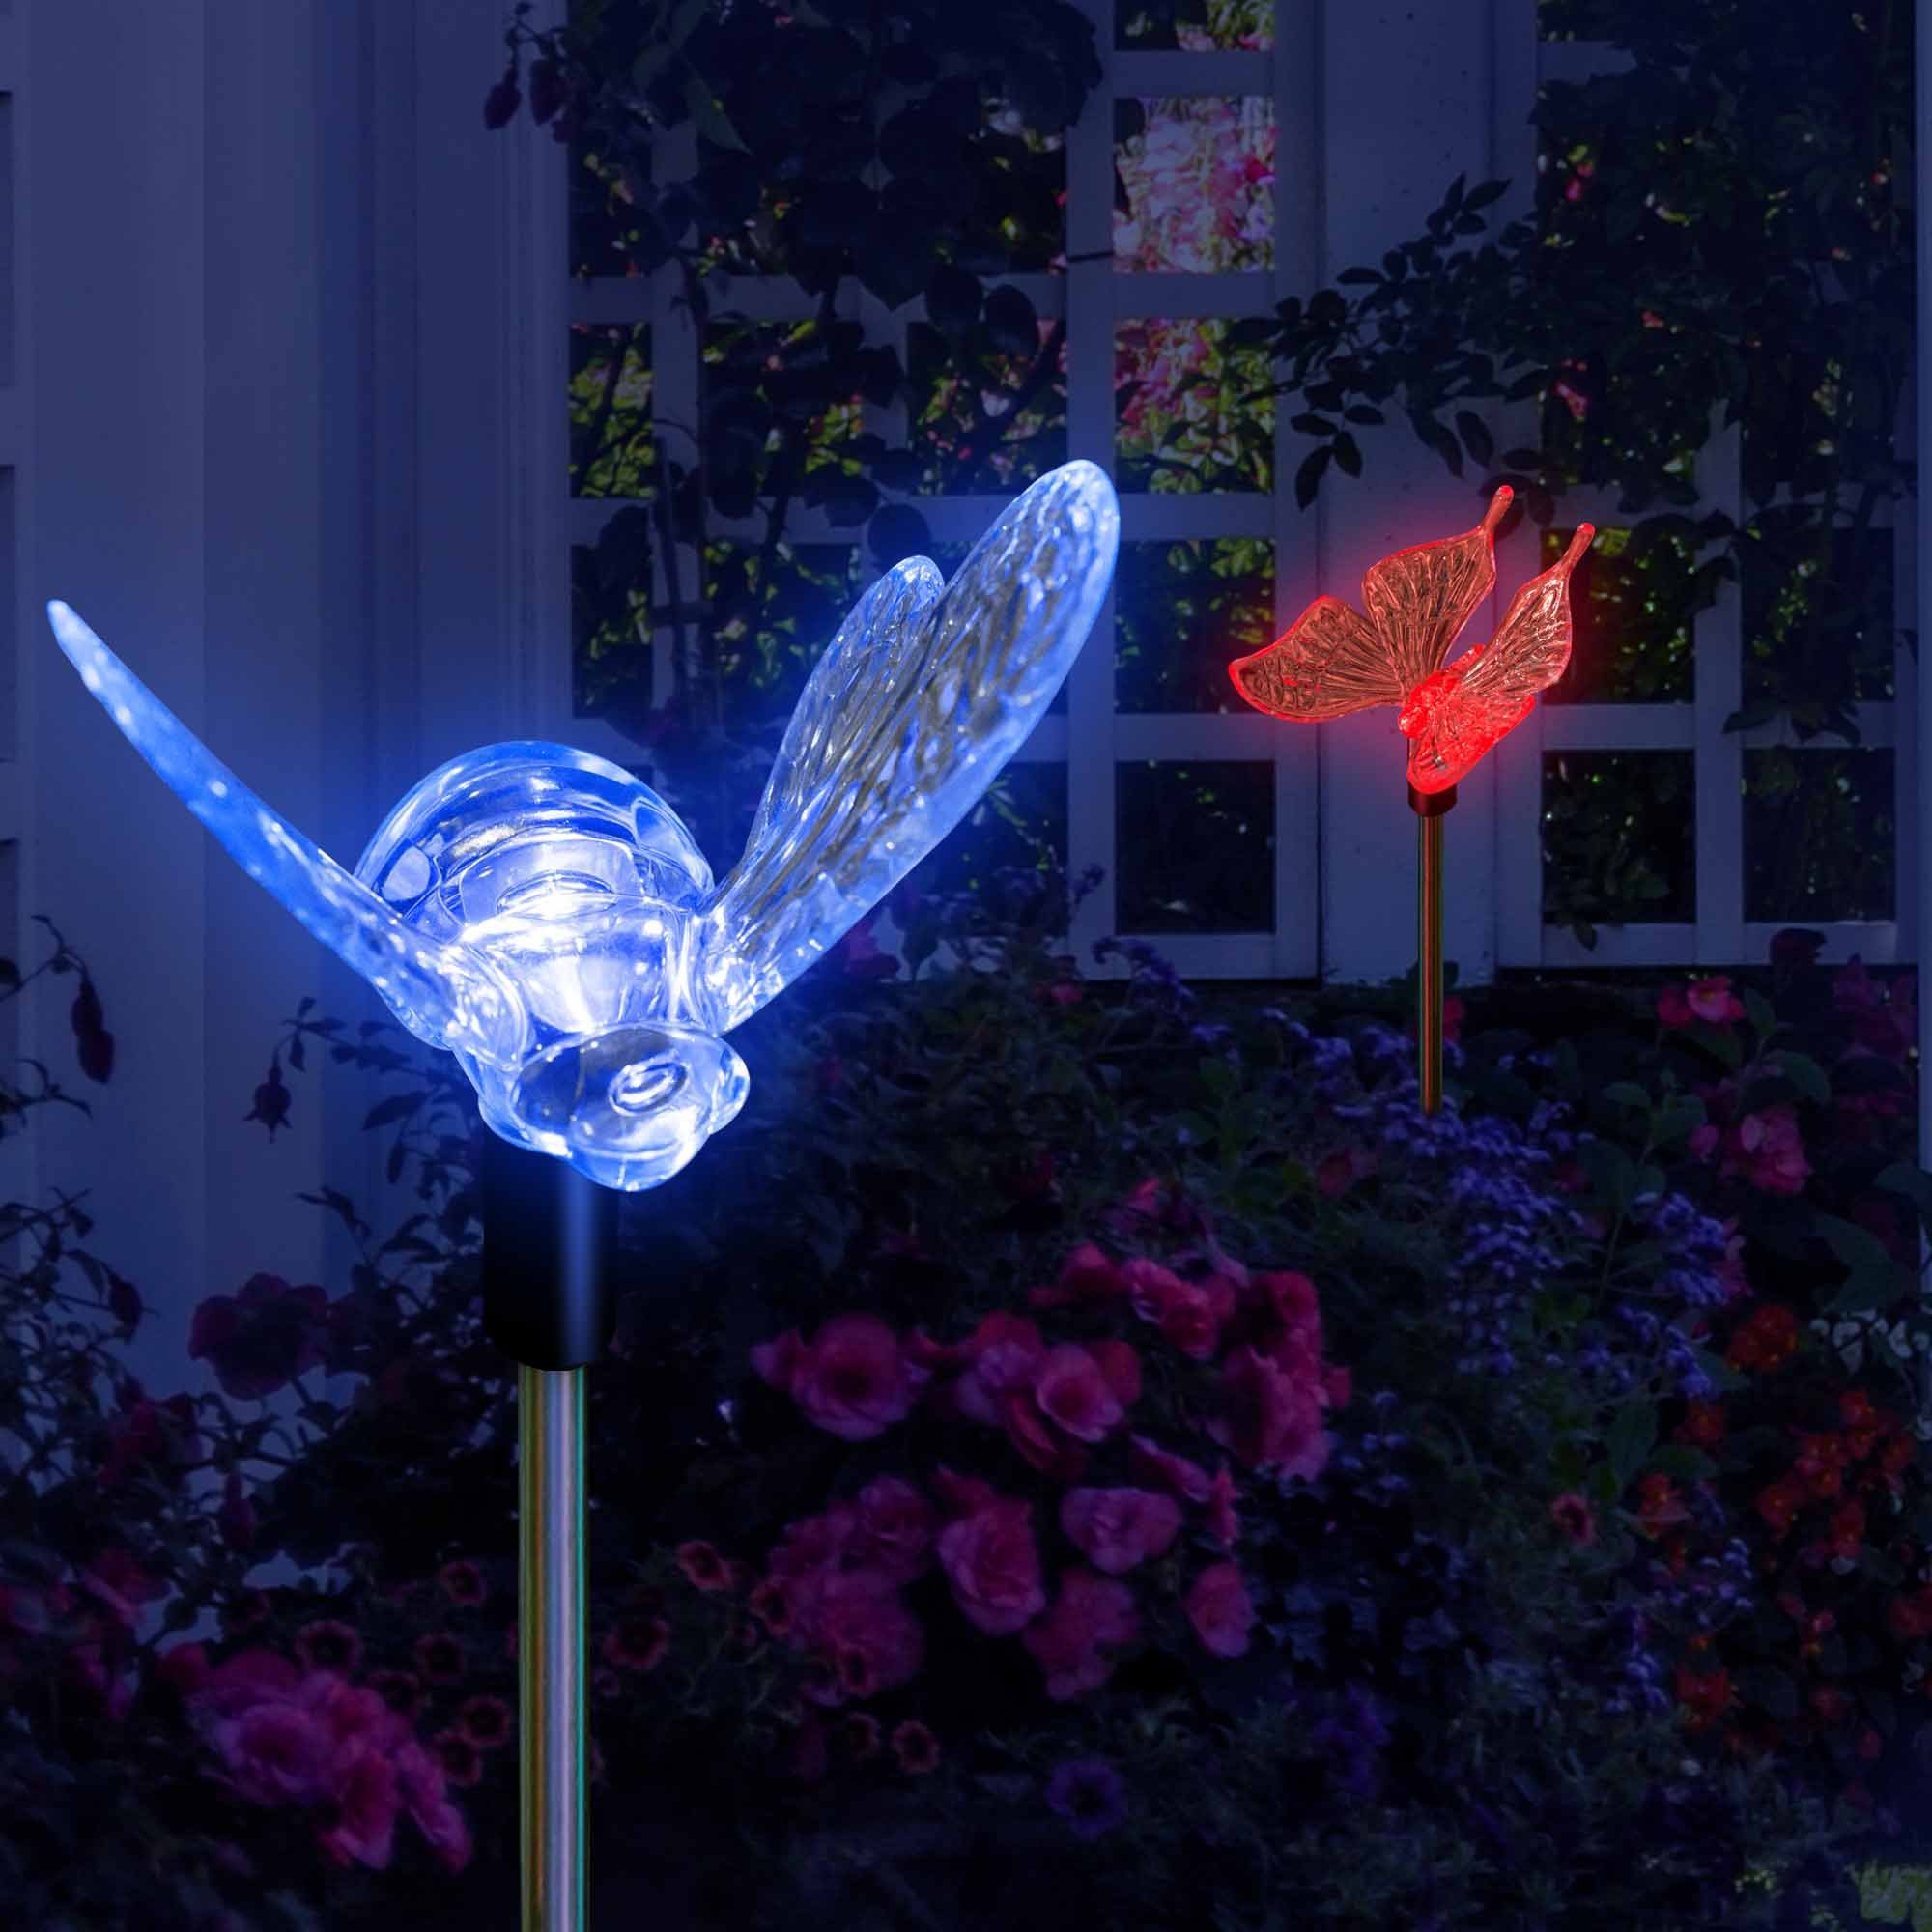 SolarDuke Solar Garden Outdoor Stake Lights Butterfly and Bumble Bee Garden Lighting Path Decoration Color Changing Patio Lawn Backyard Decor by SolarDuke (Image #5)